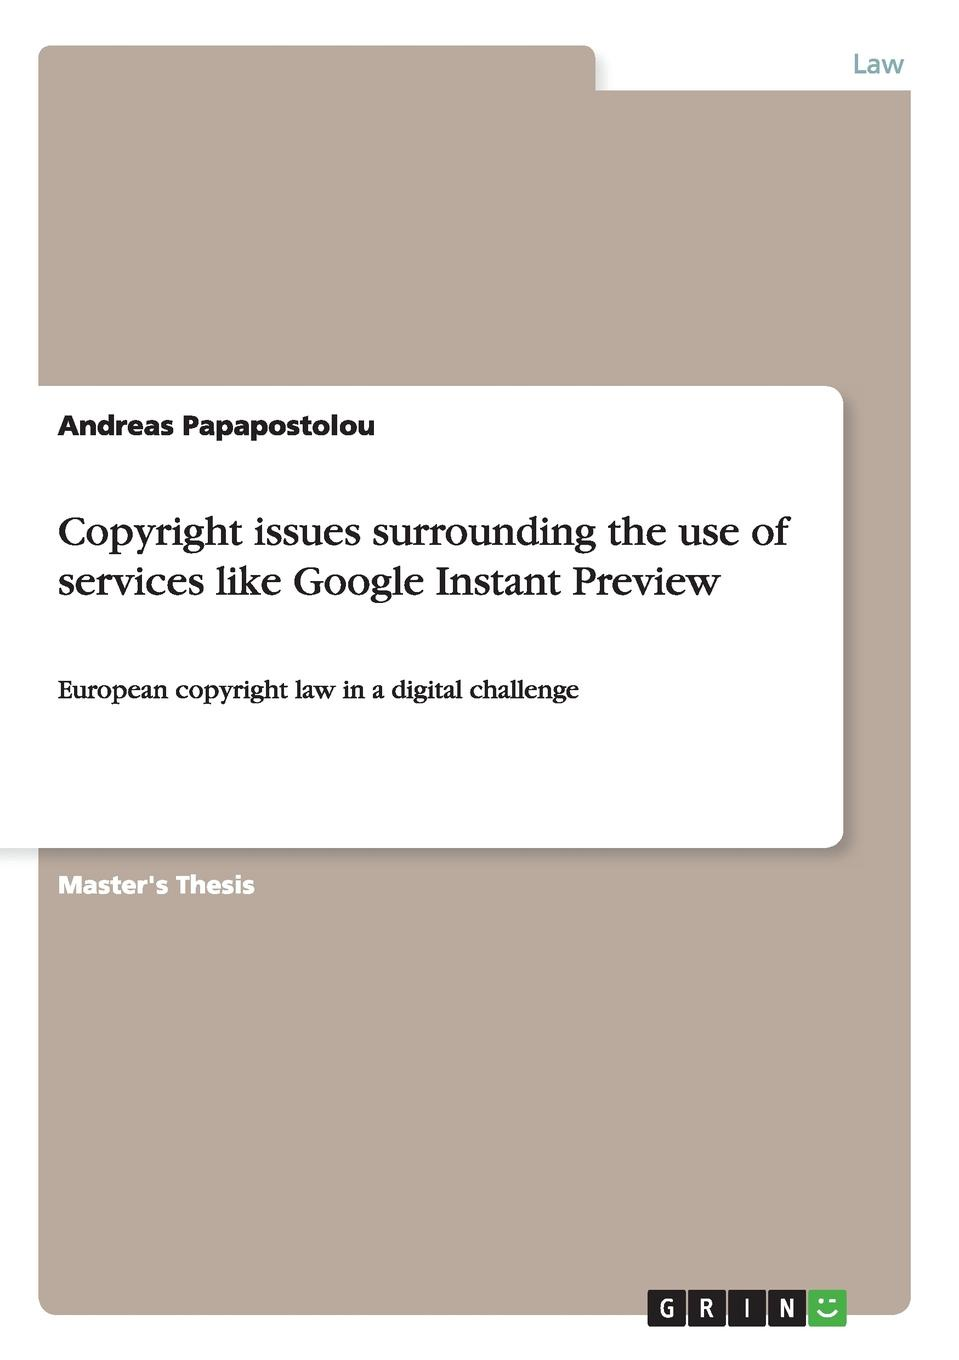 Andreas Papapostolou Copyright issues surrounding the use of services like Google Instant Preview serelec search engines result refinement and classificaion